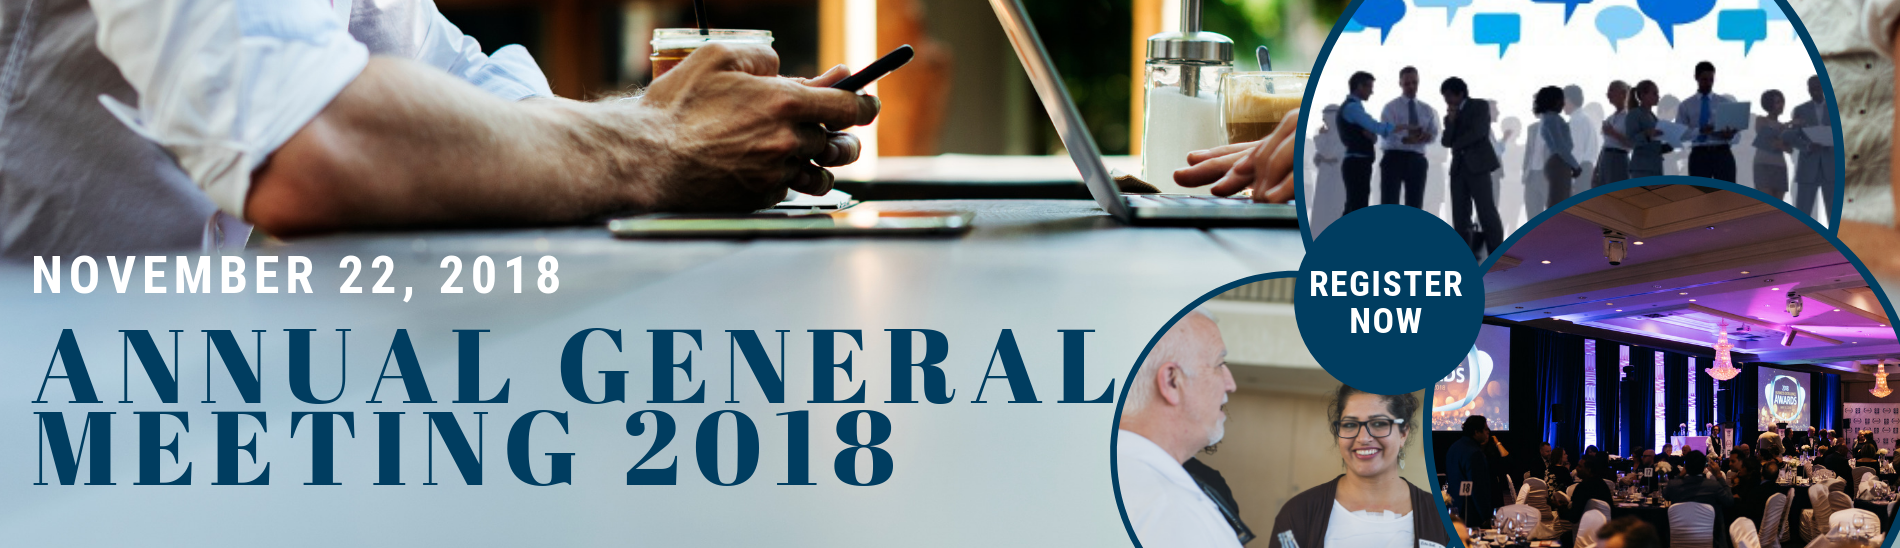 Annual-General2018-2.png